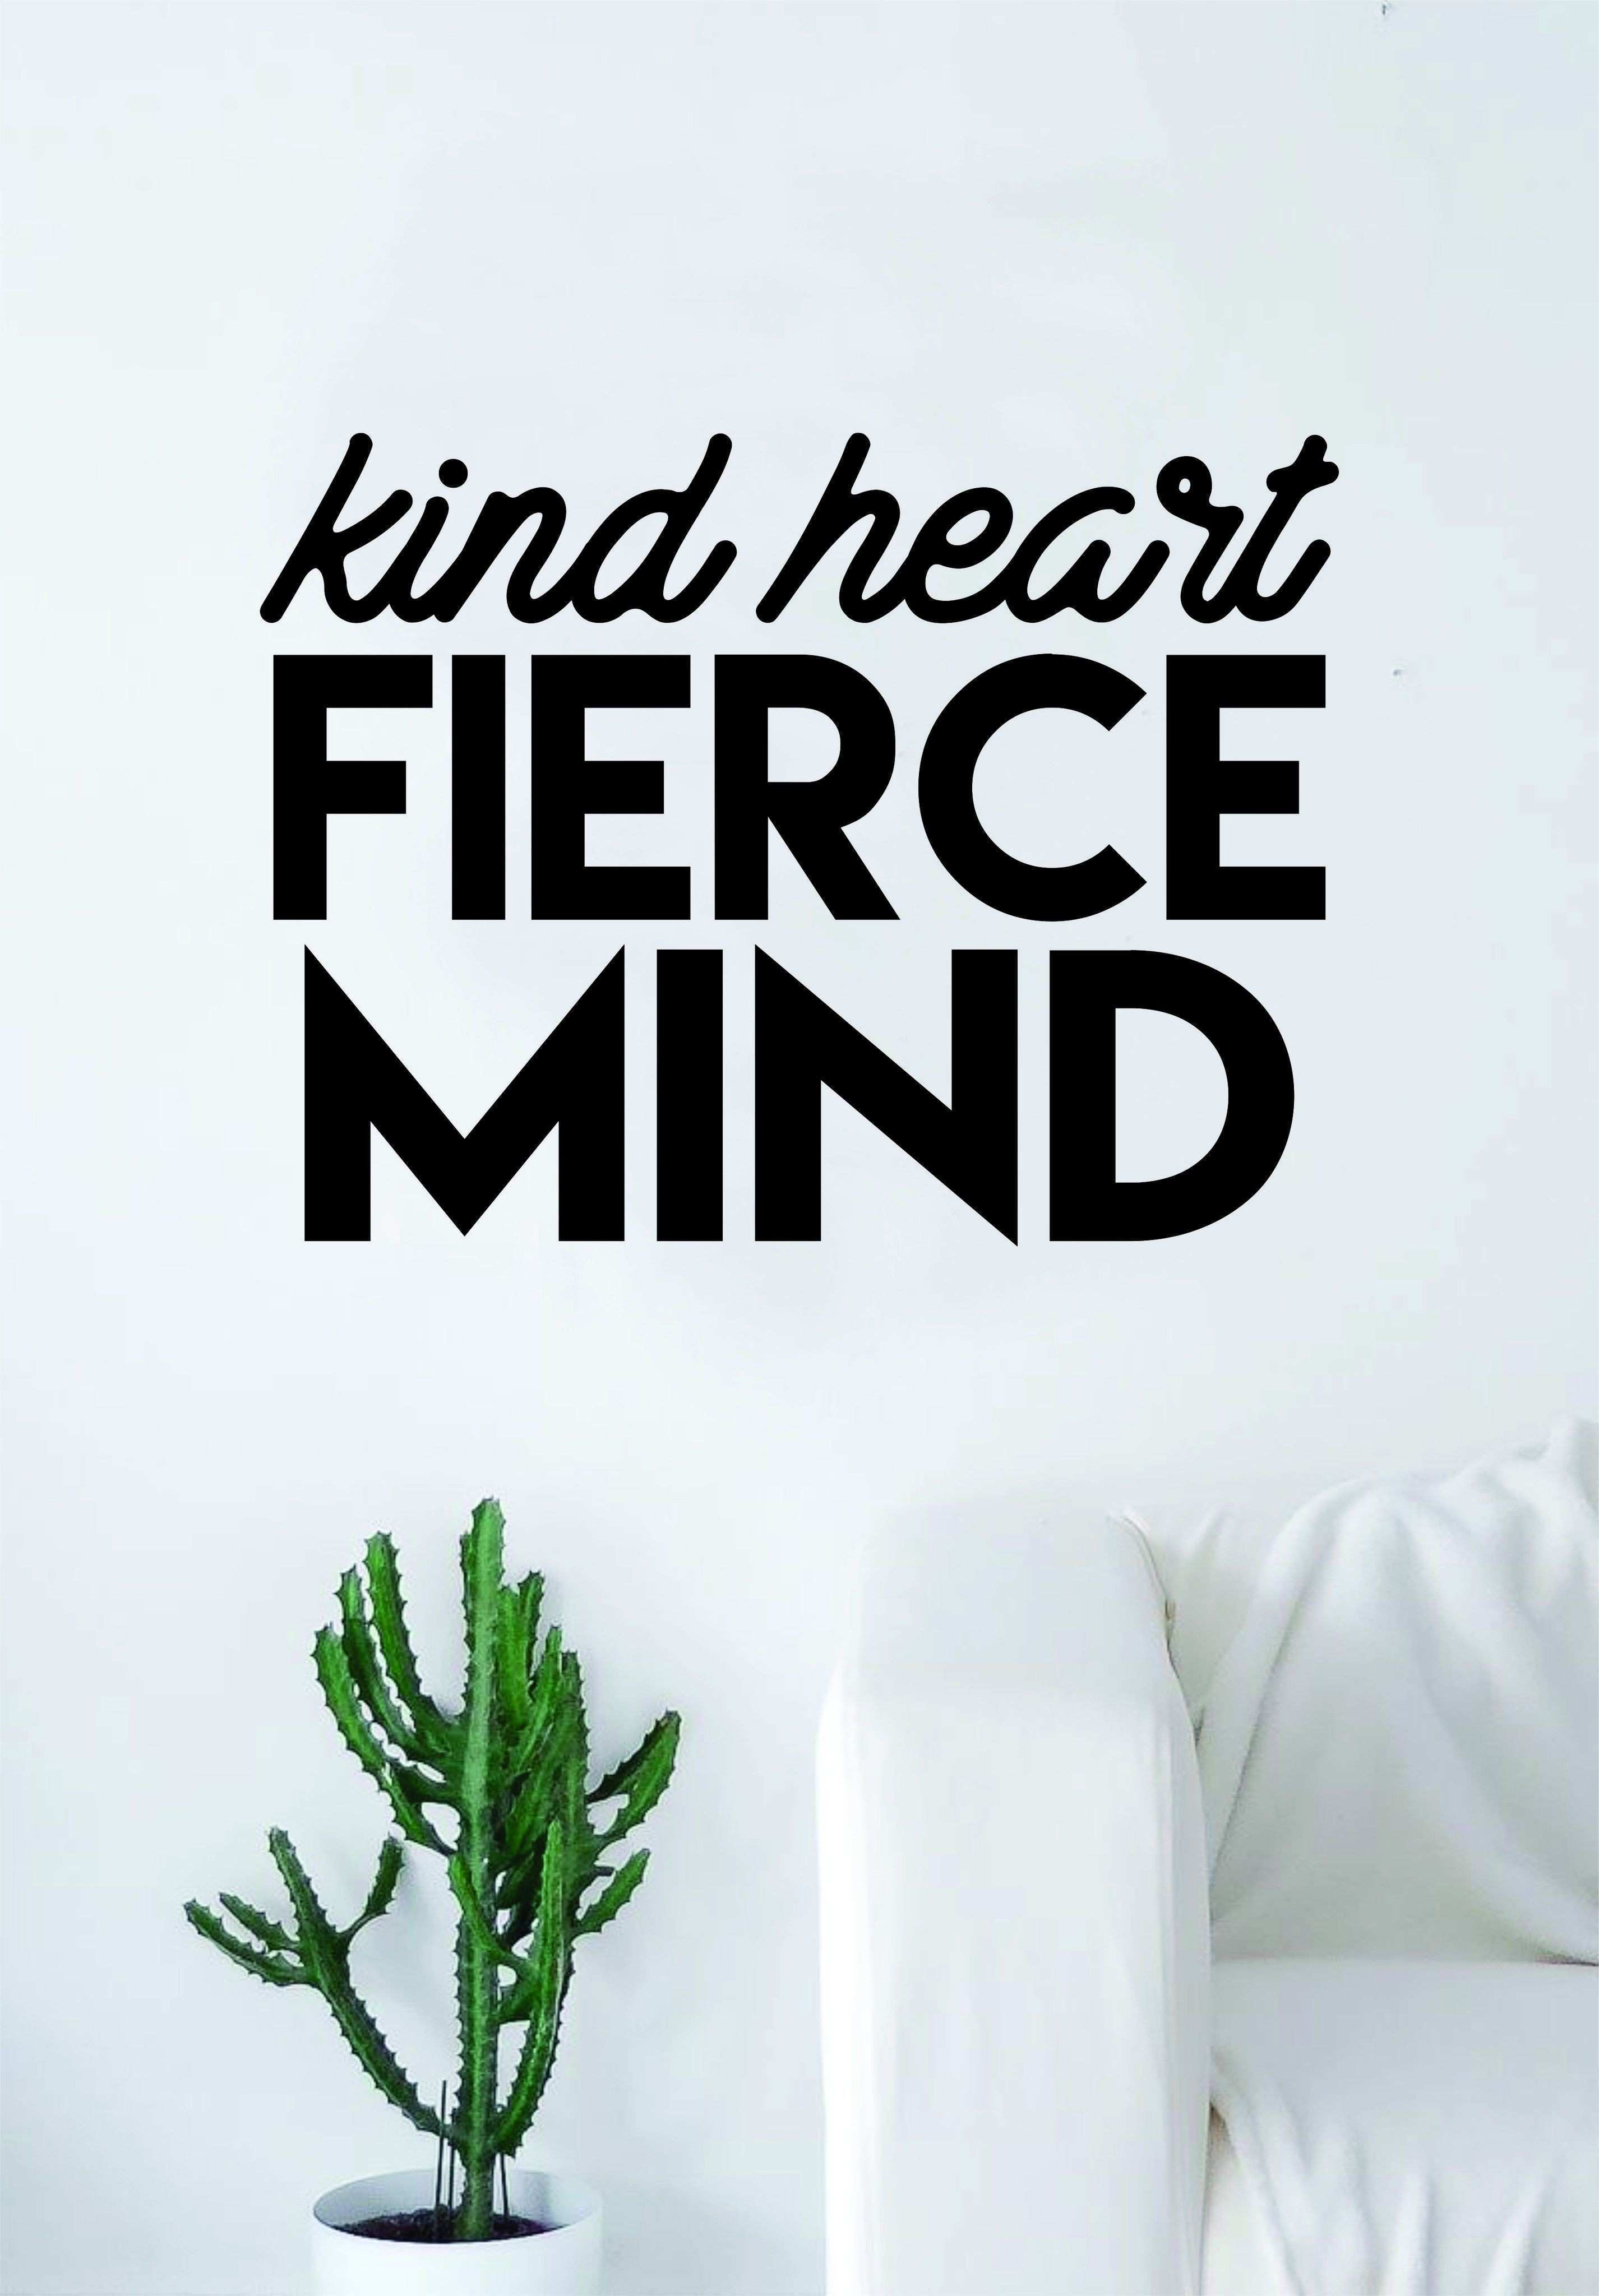 Kind Heart Fierce Mind Quote Wall Decal Sticker Bedroom Living Room